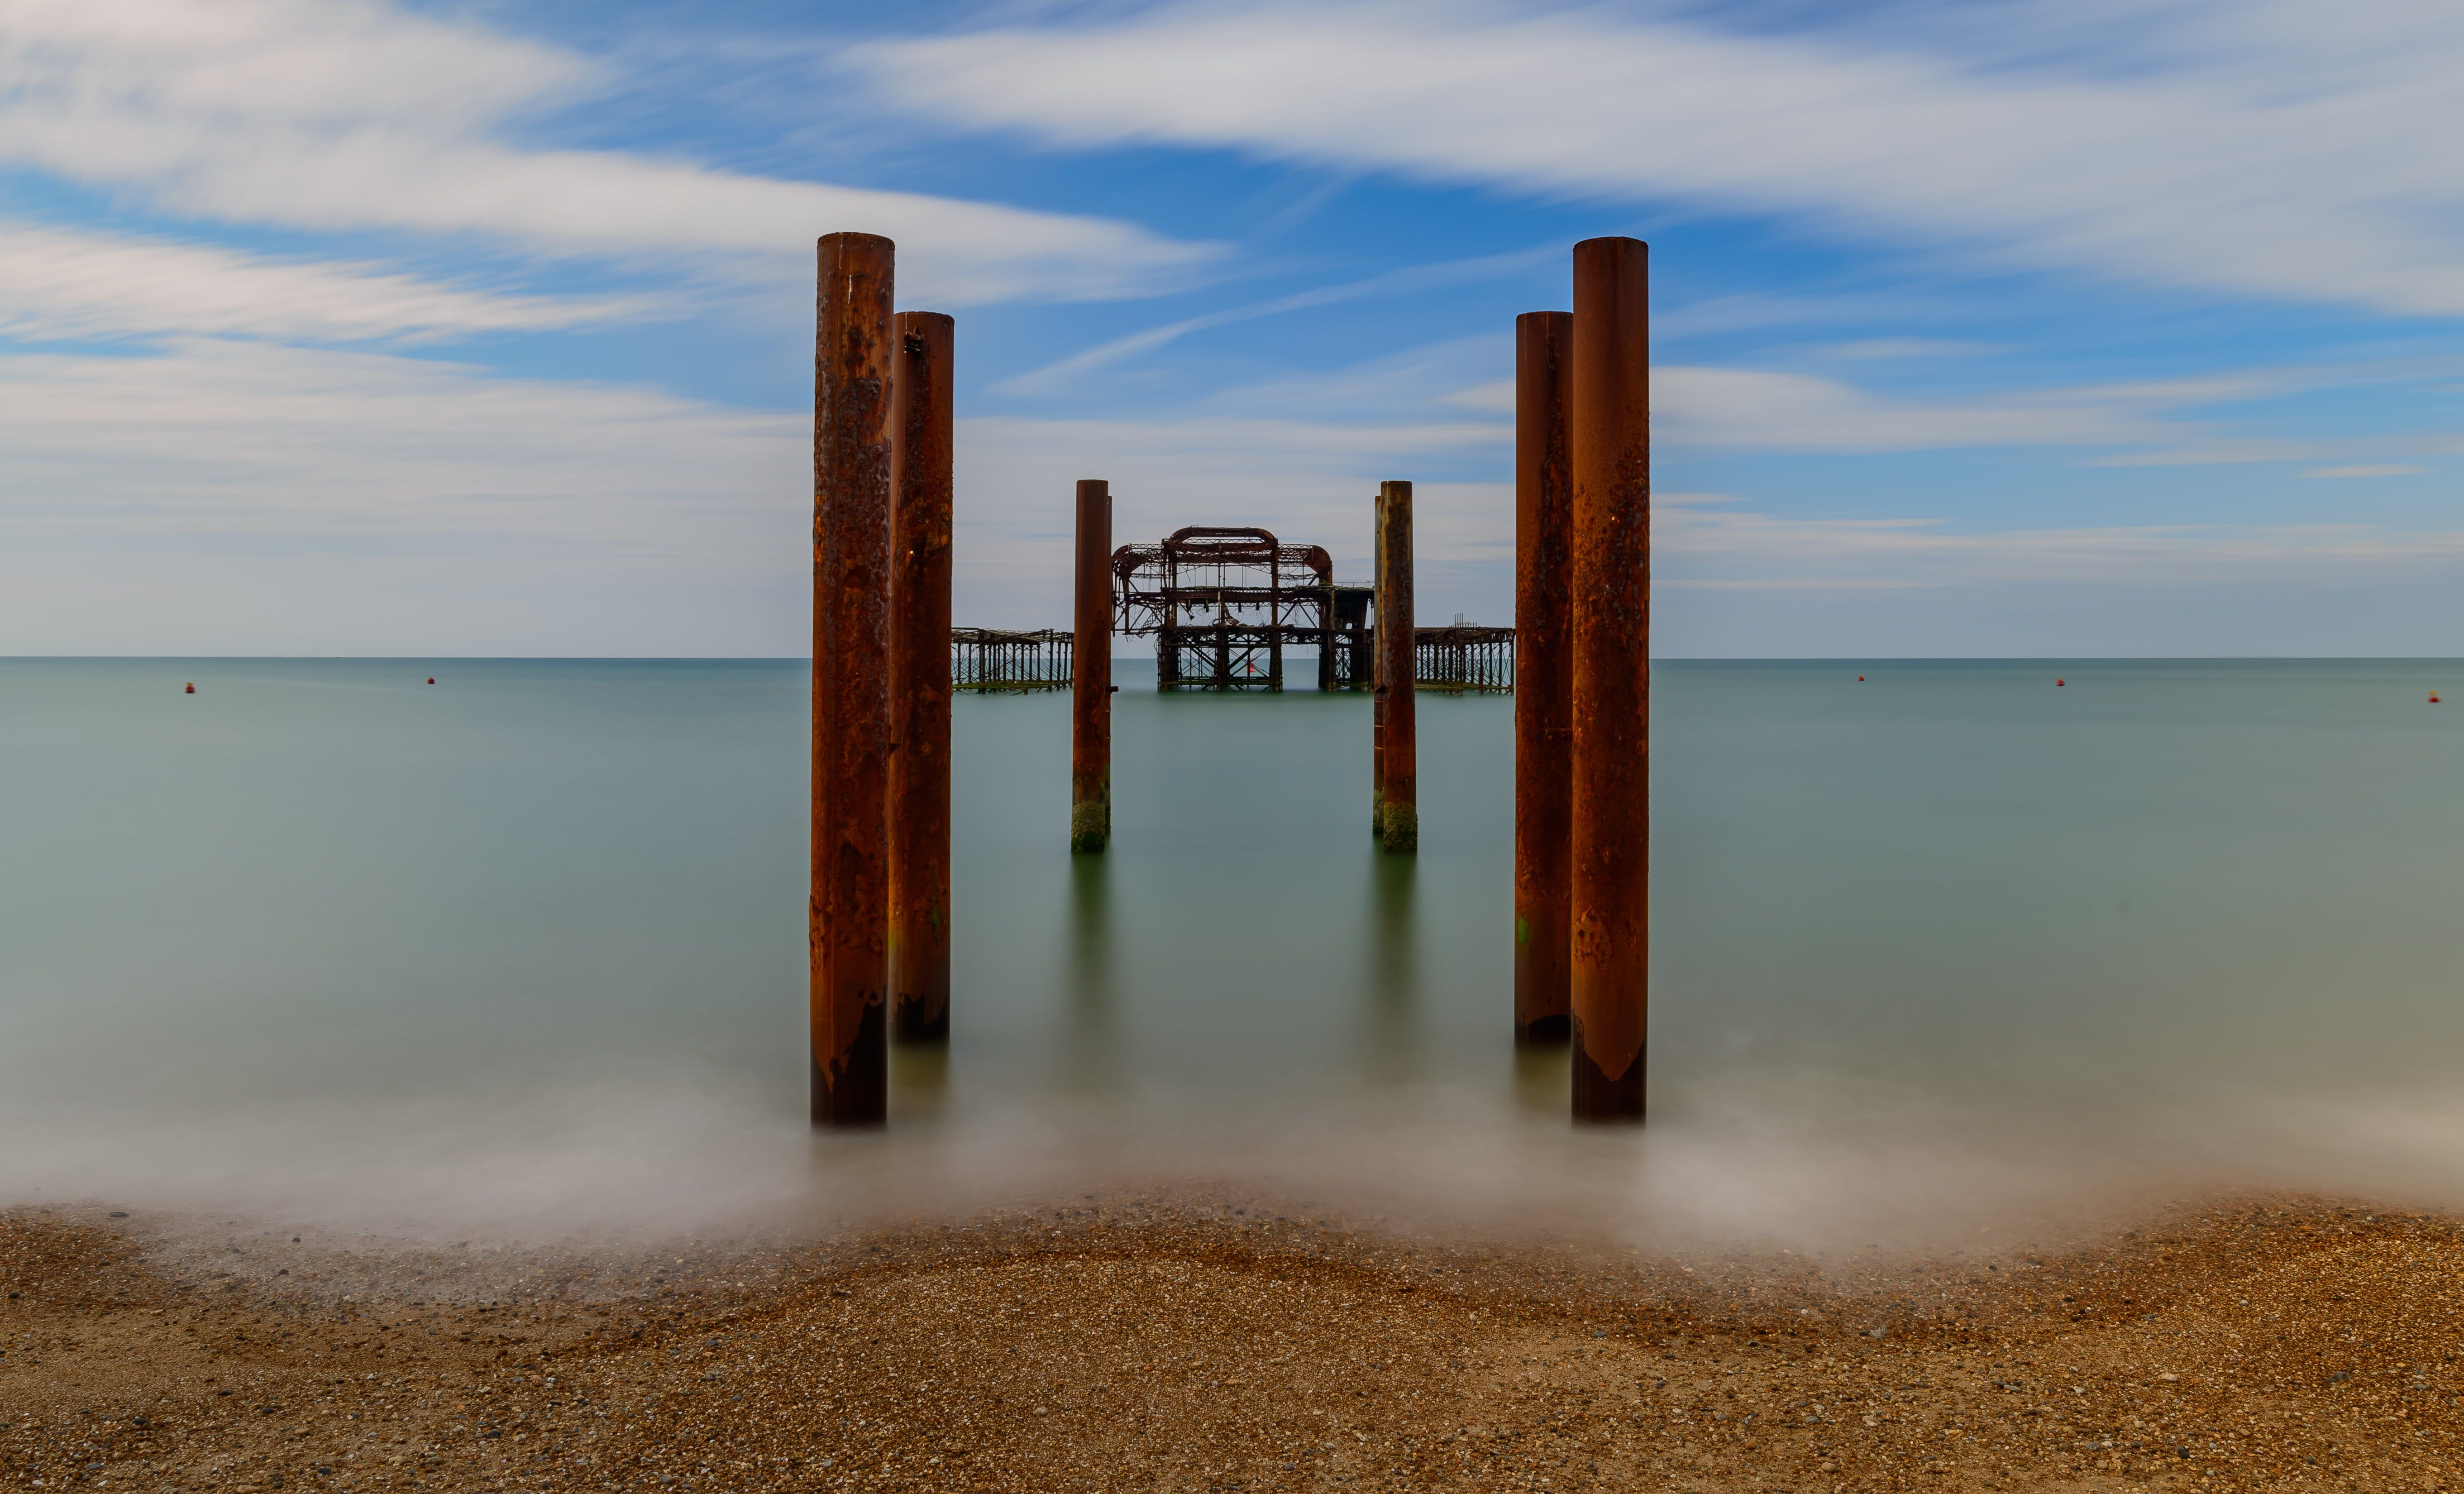 Brown wooden pillar on body of water, brighton HD wallpapers